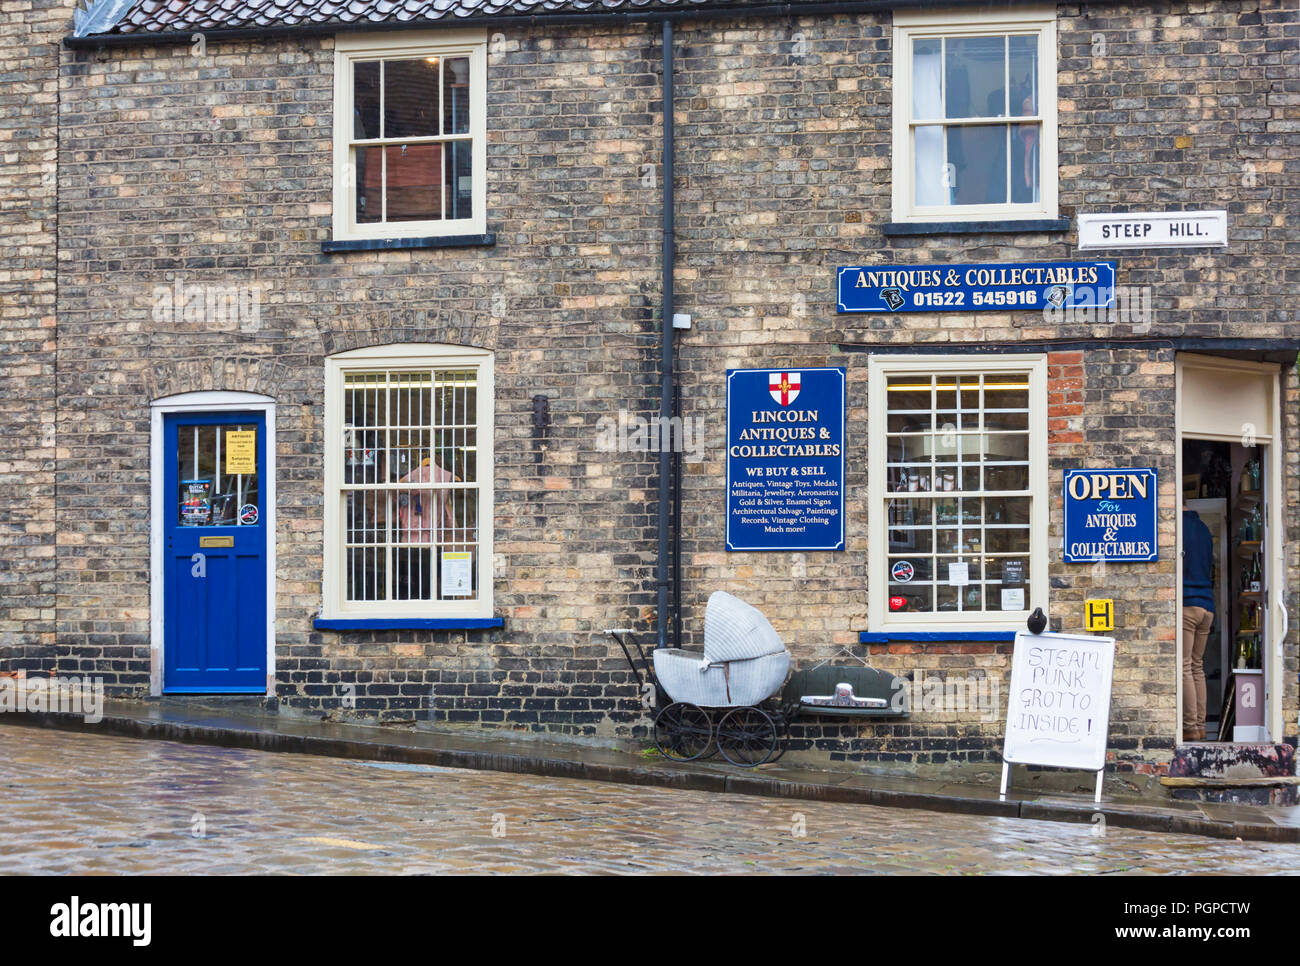 Lincoln Antiques & Collectables on Steep Hill at Lincoln on a wet rainy day in August - Stock Image